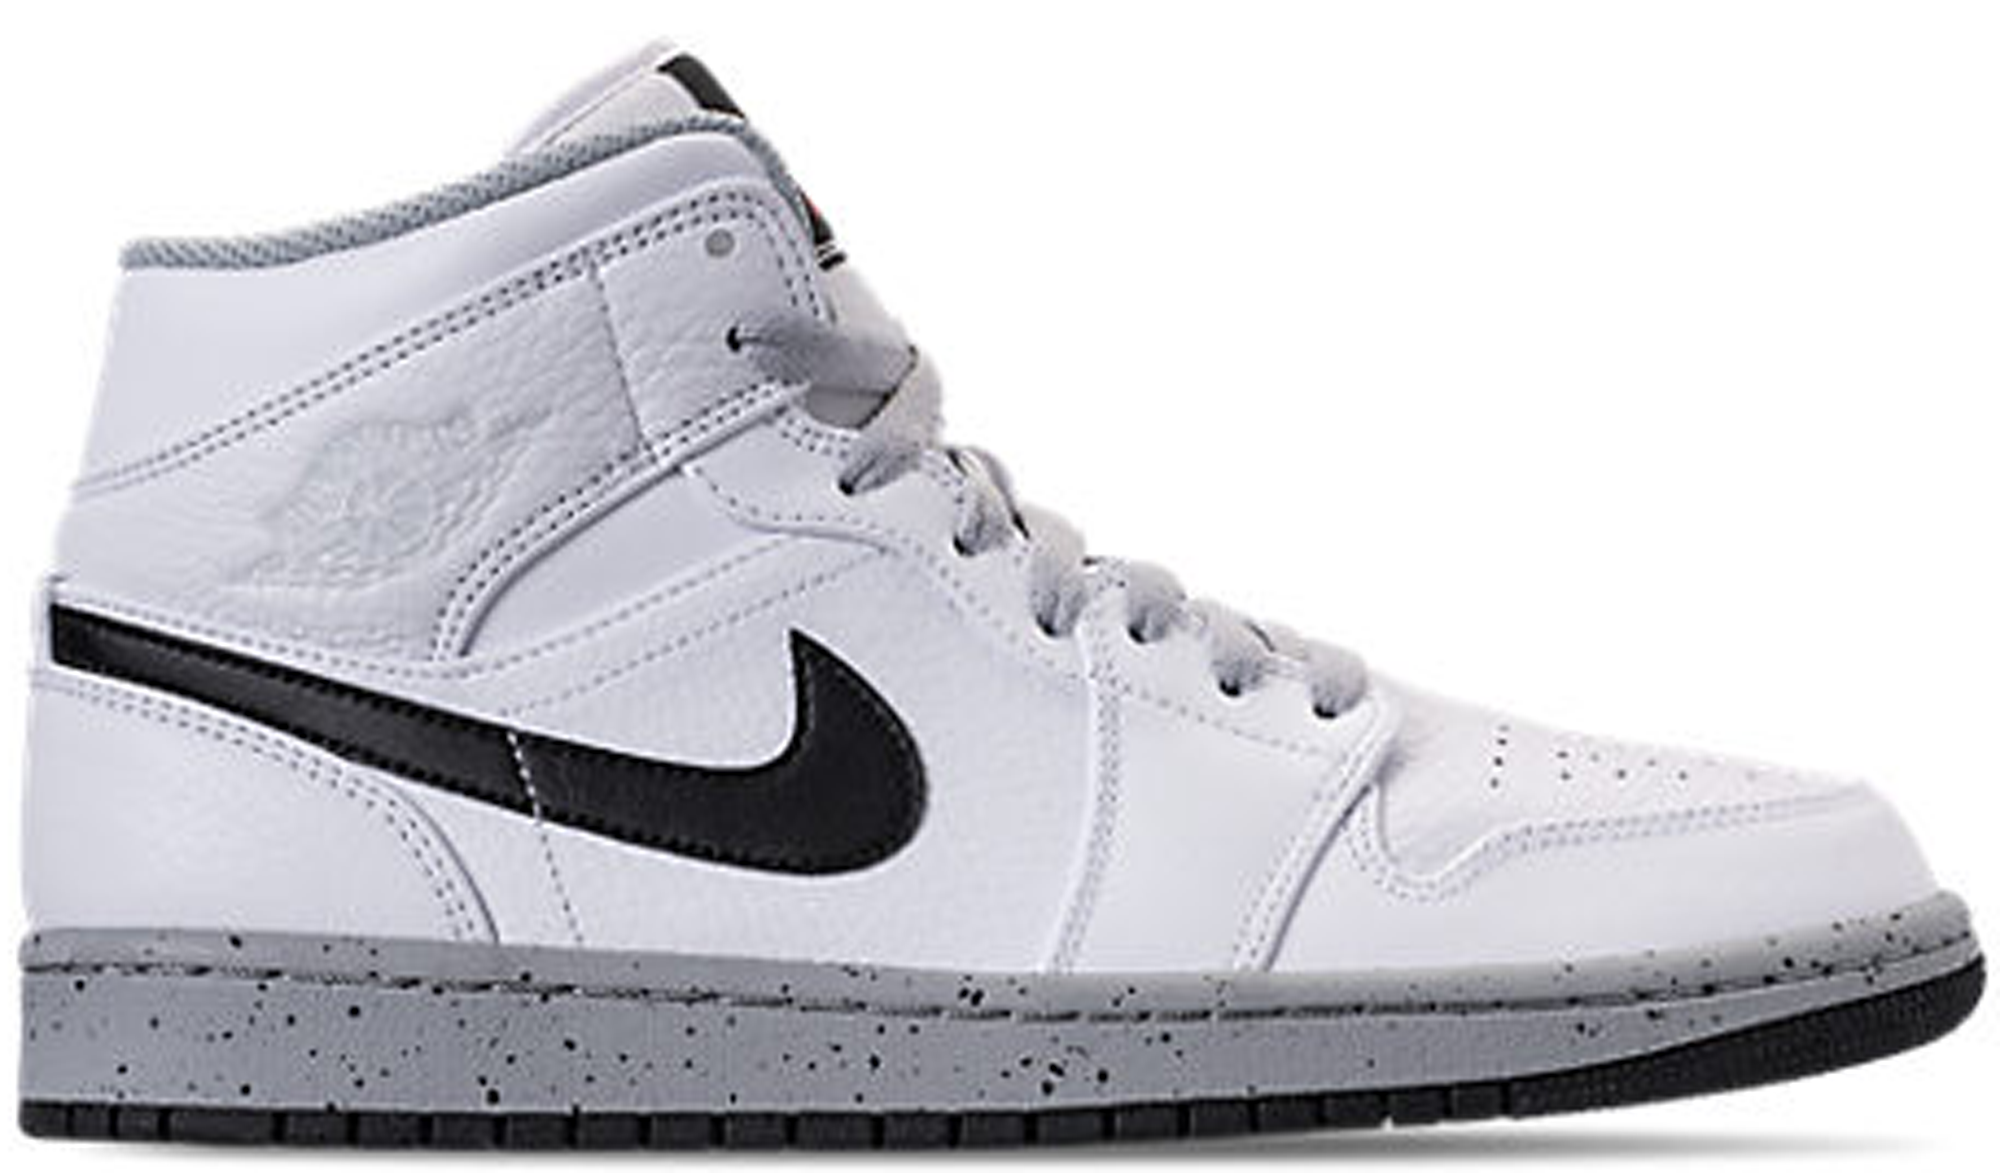 hot sale online 6bc8f 93c1b ... real jordan 1 mid white cement 9101c a370c